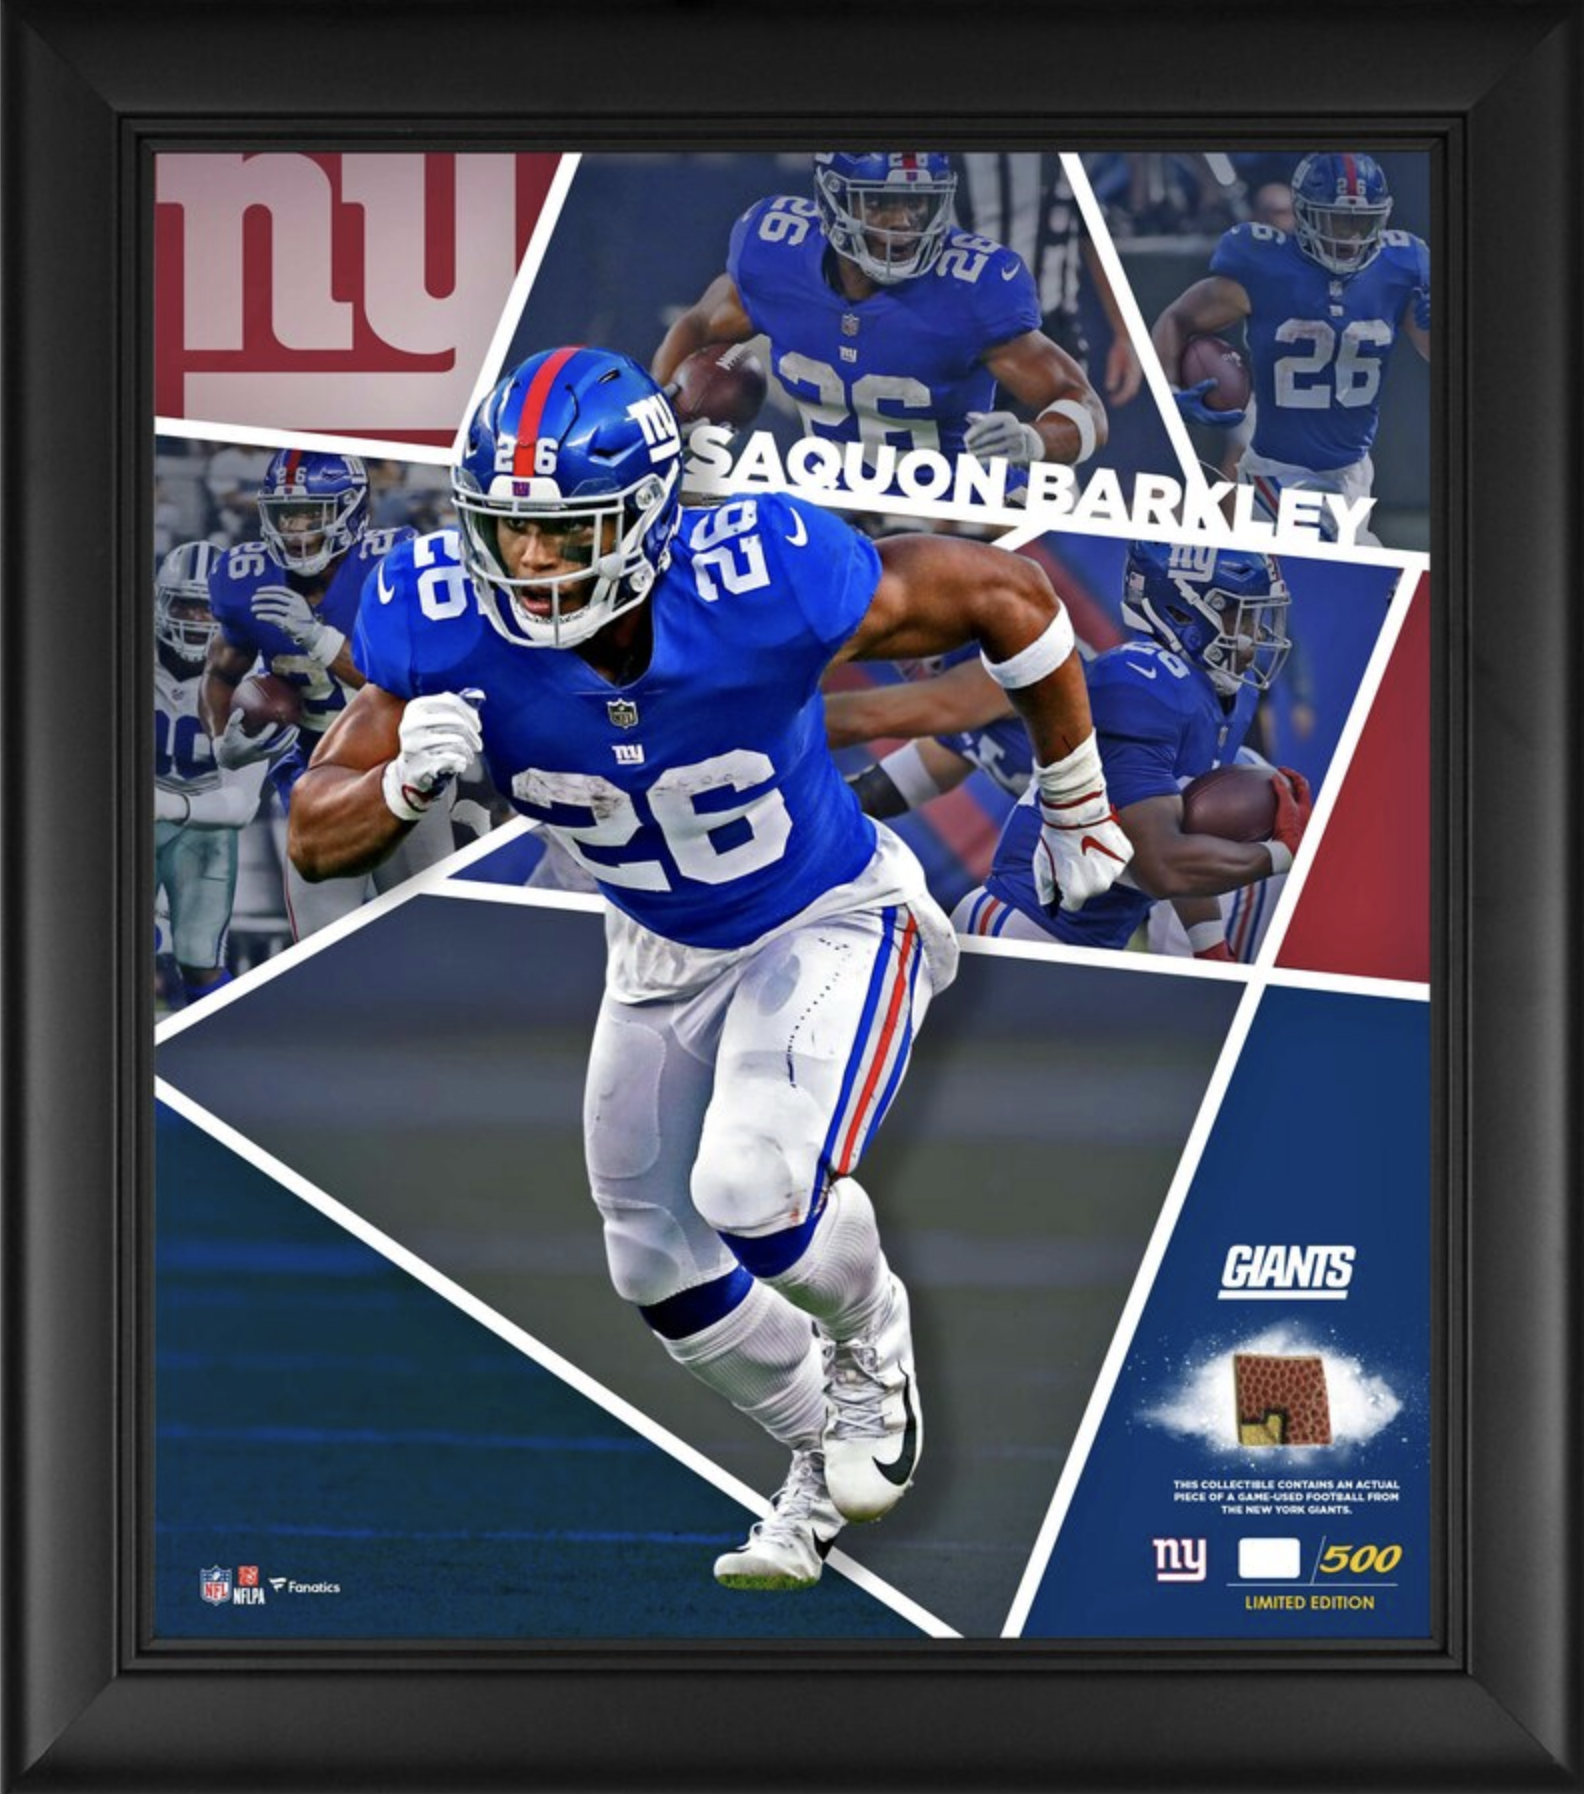 Saquon Barkley New York Giants Fanatics Authentic Framed 15″ x 17″ Impact Player Collage with a Piece of Game-Used Football – Limited Edition of 500